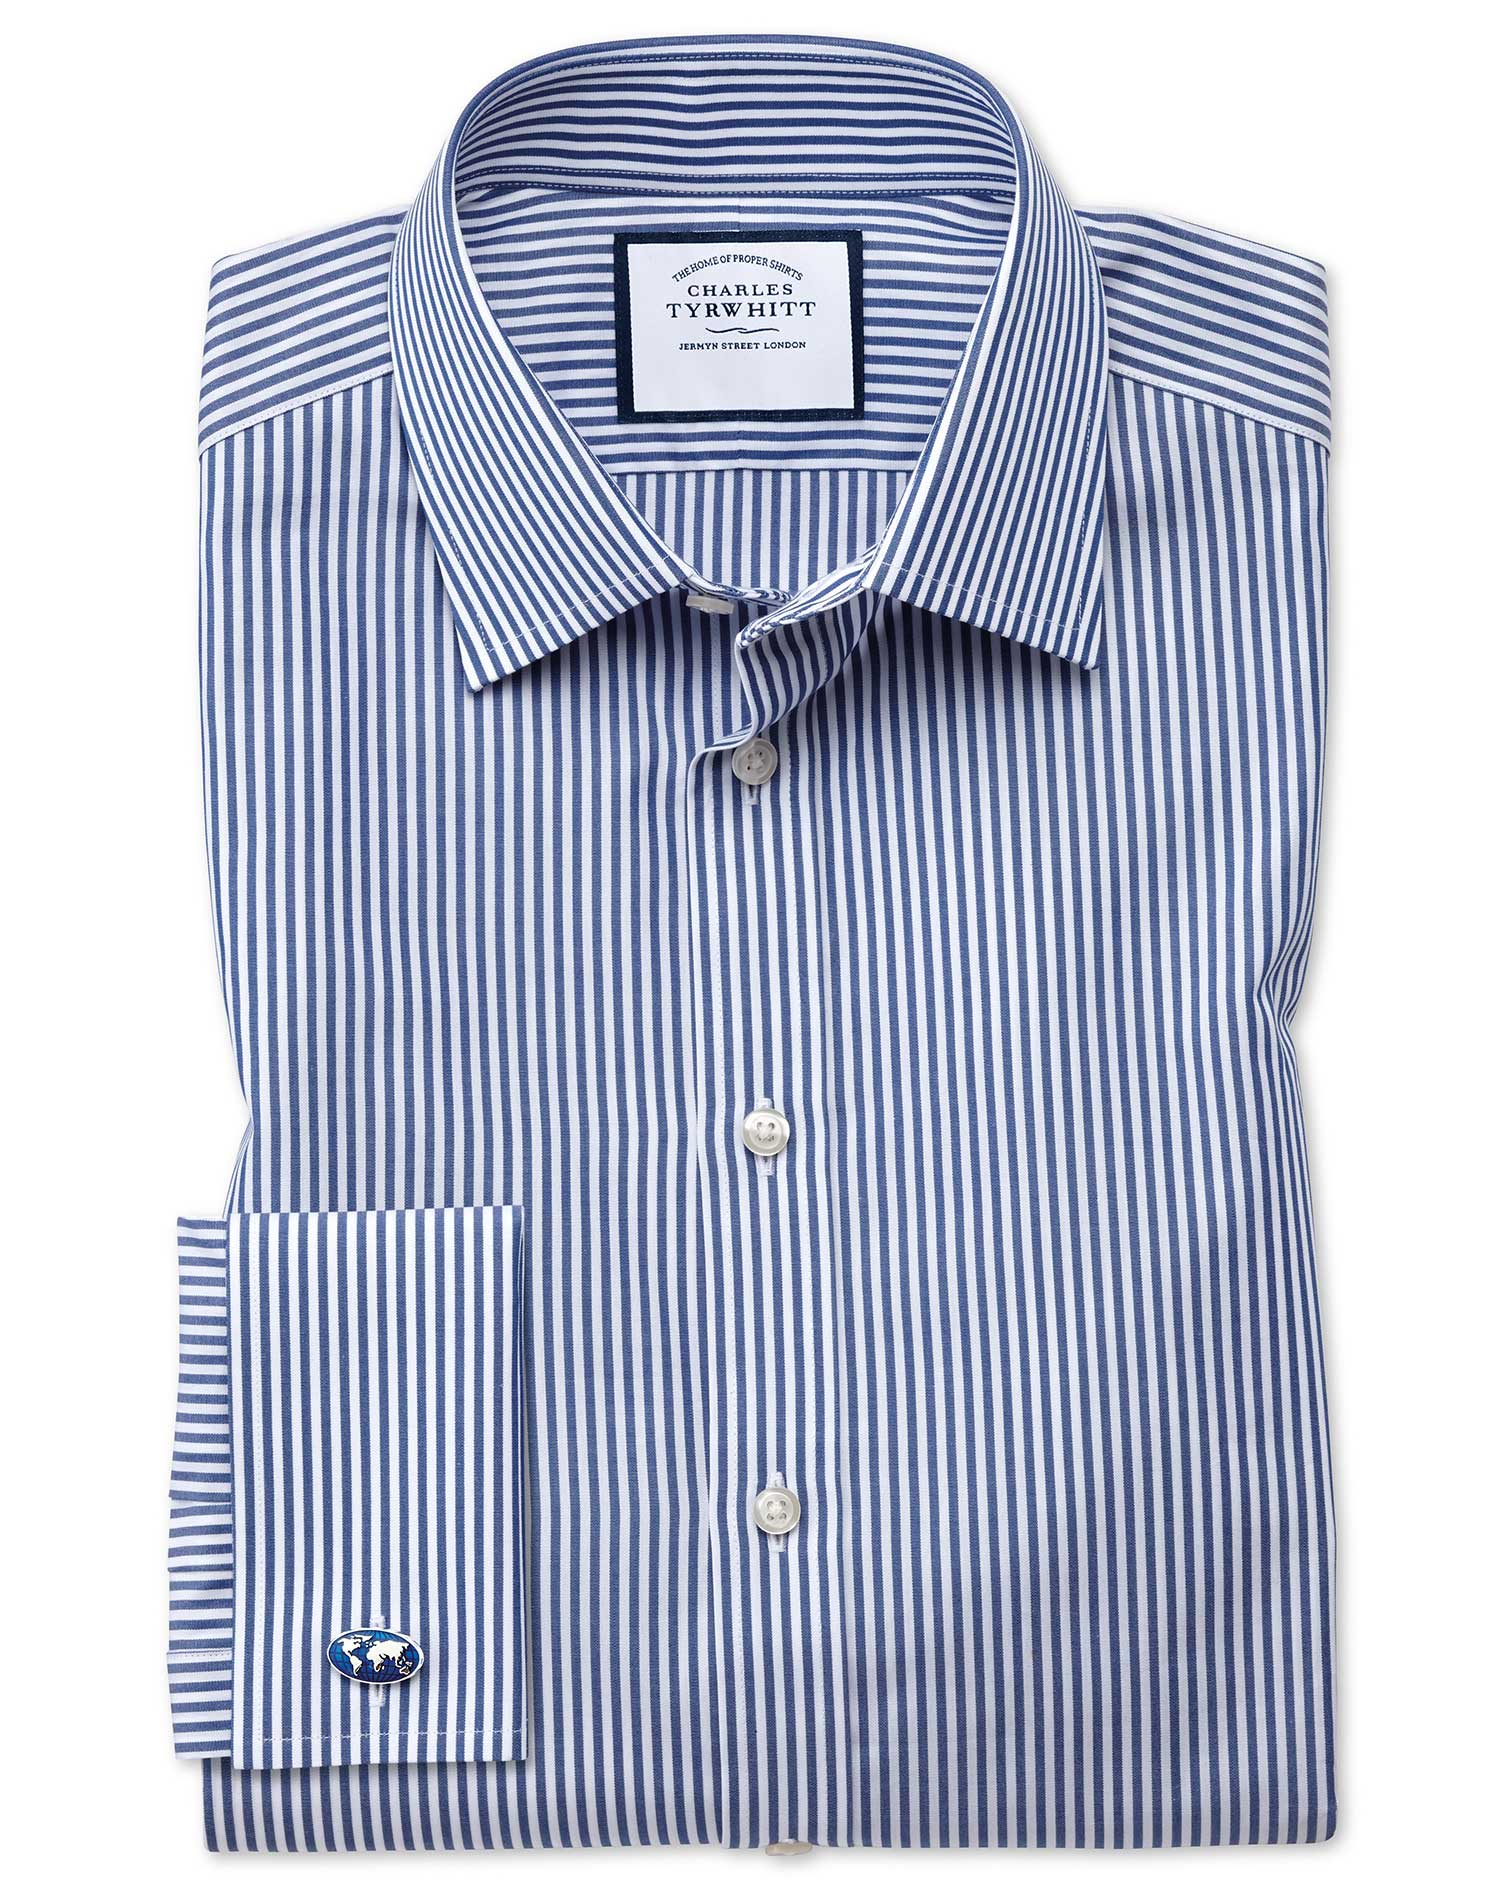 Extra Slim Fit Bengal Stripe Navy Blue Cotton Formal Shirt Double Cuff Size 17/35 by Charles Tyrwhit